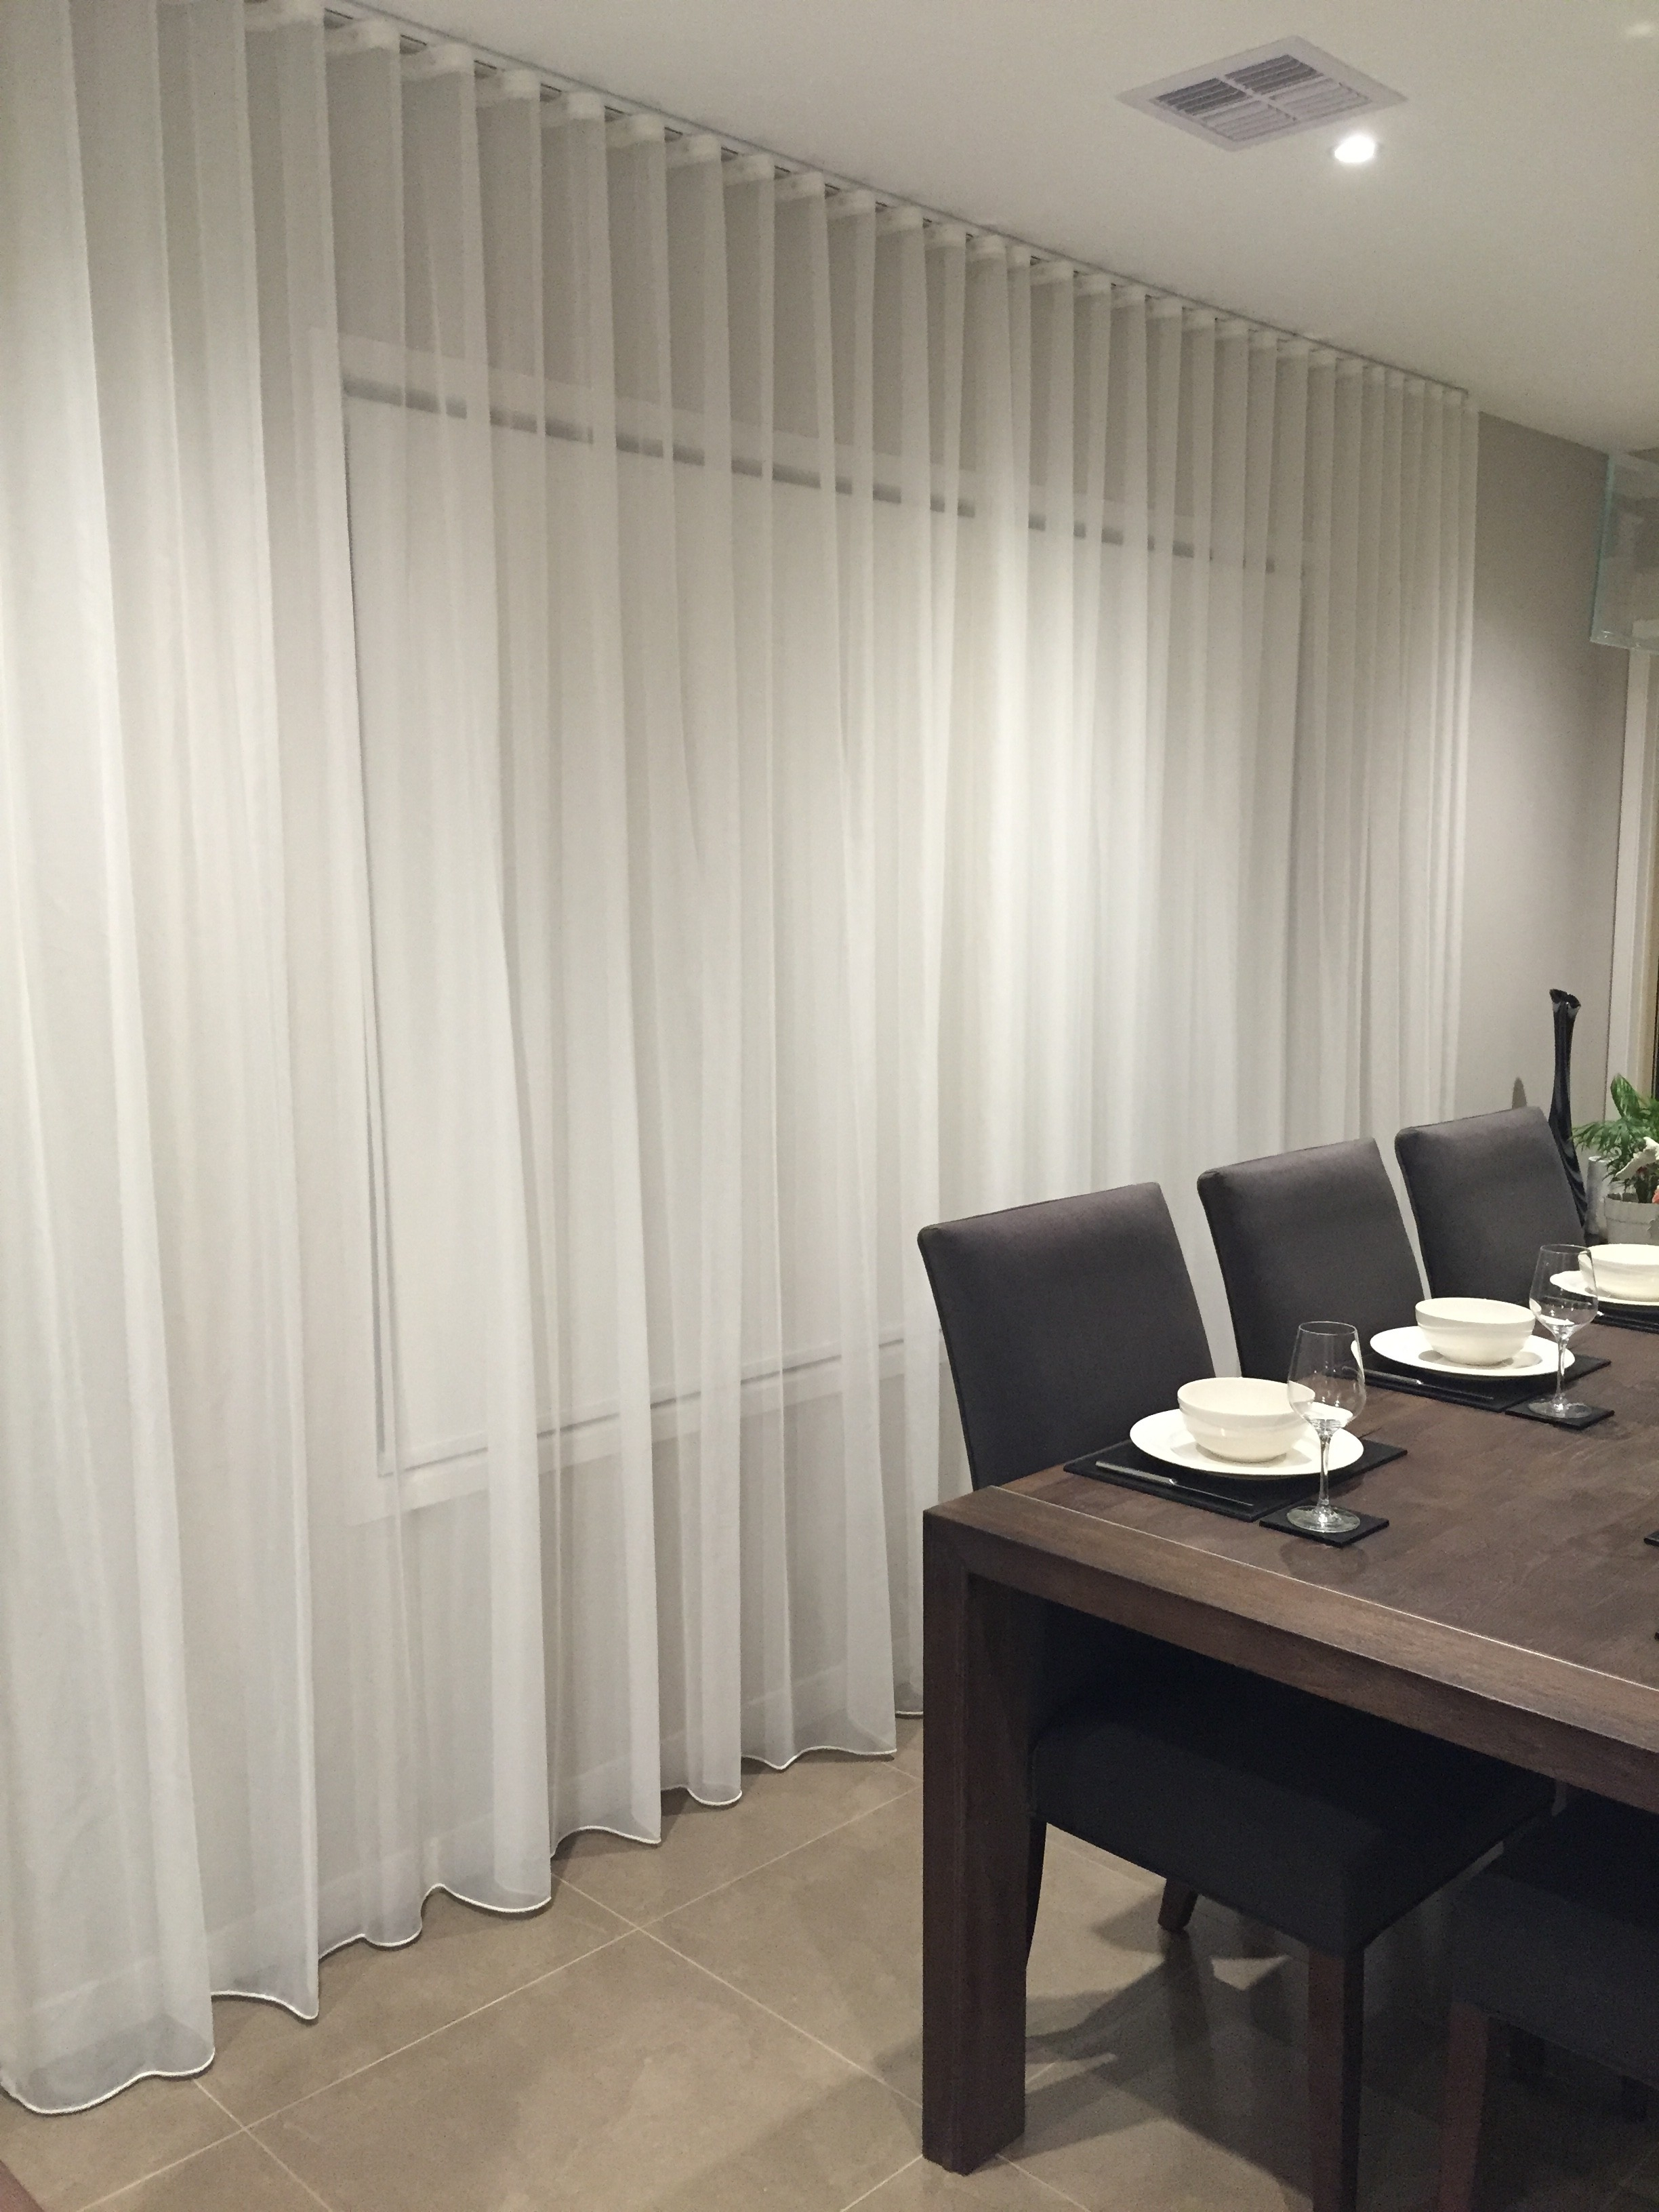 Amanda Rogers Roller Blinds Blockout In Vibe Cloud Sheer Intended For Sheer Roller Blind (View 13 of 15)